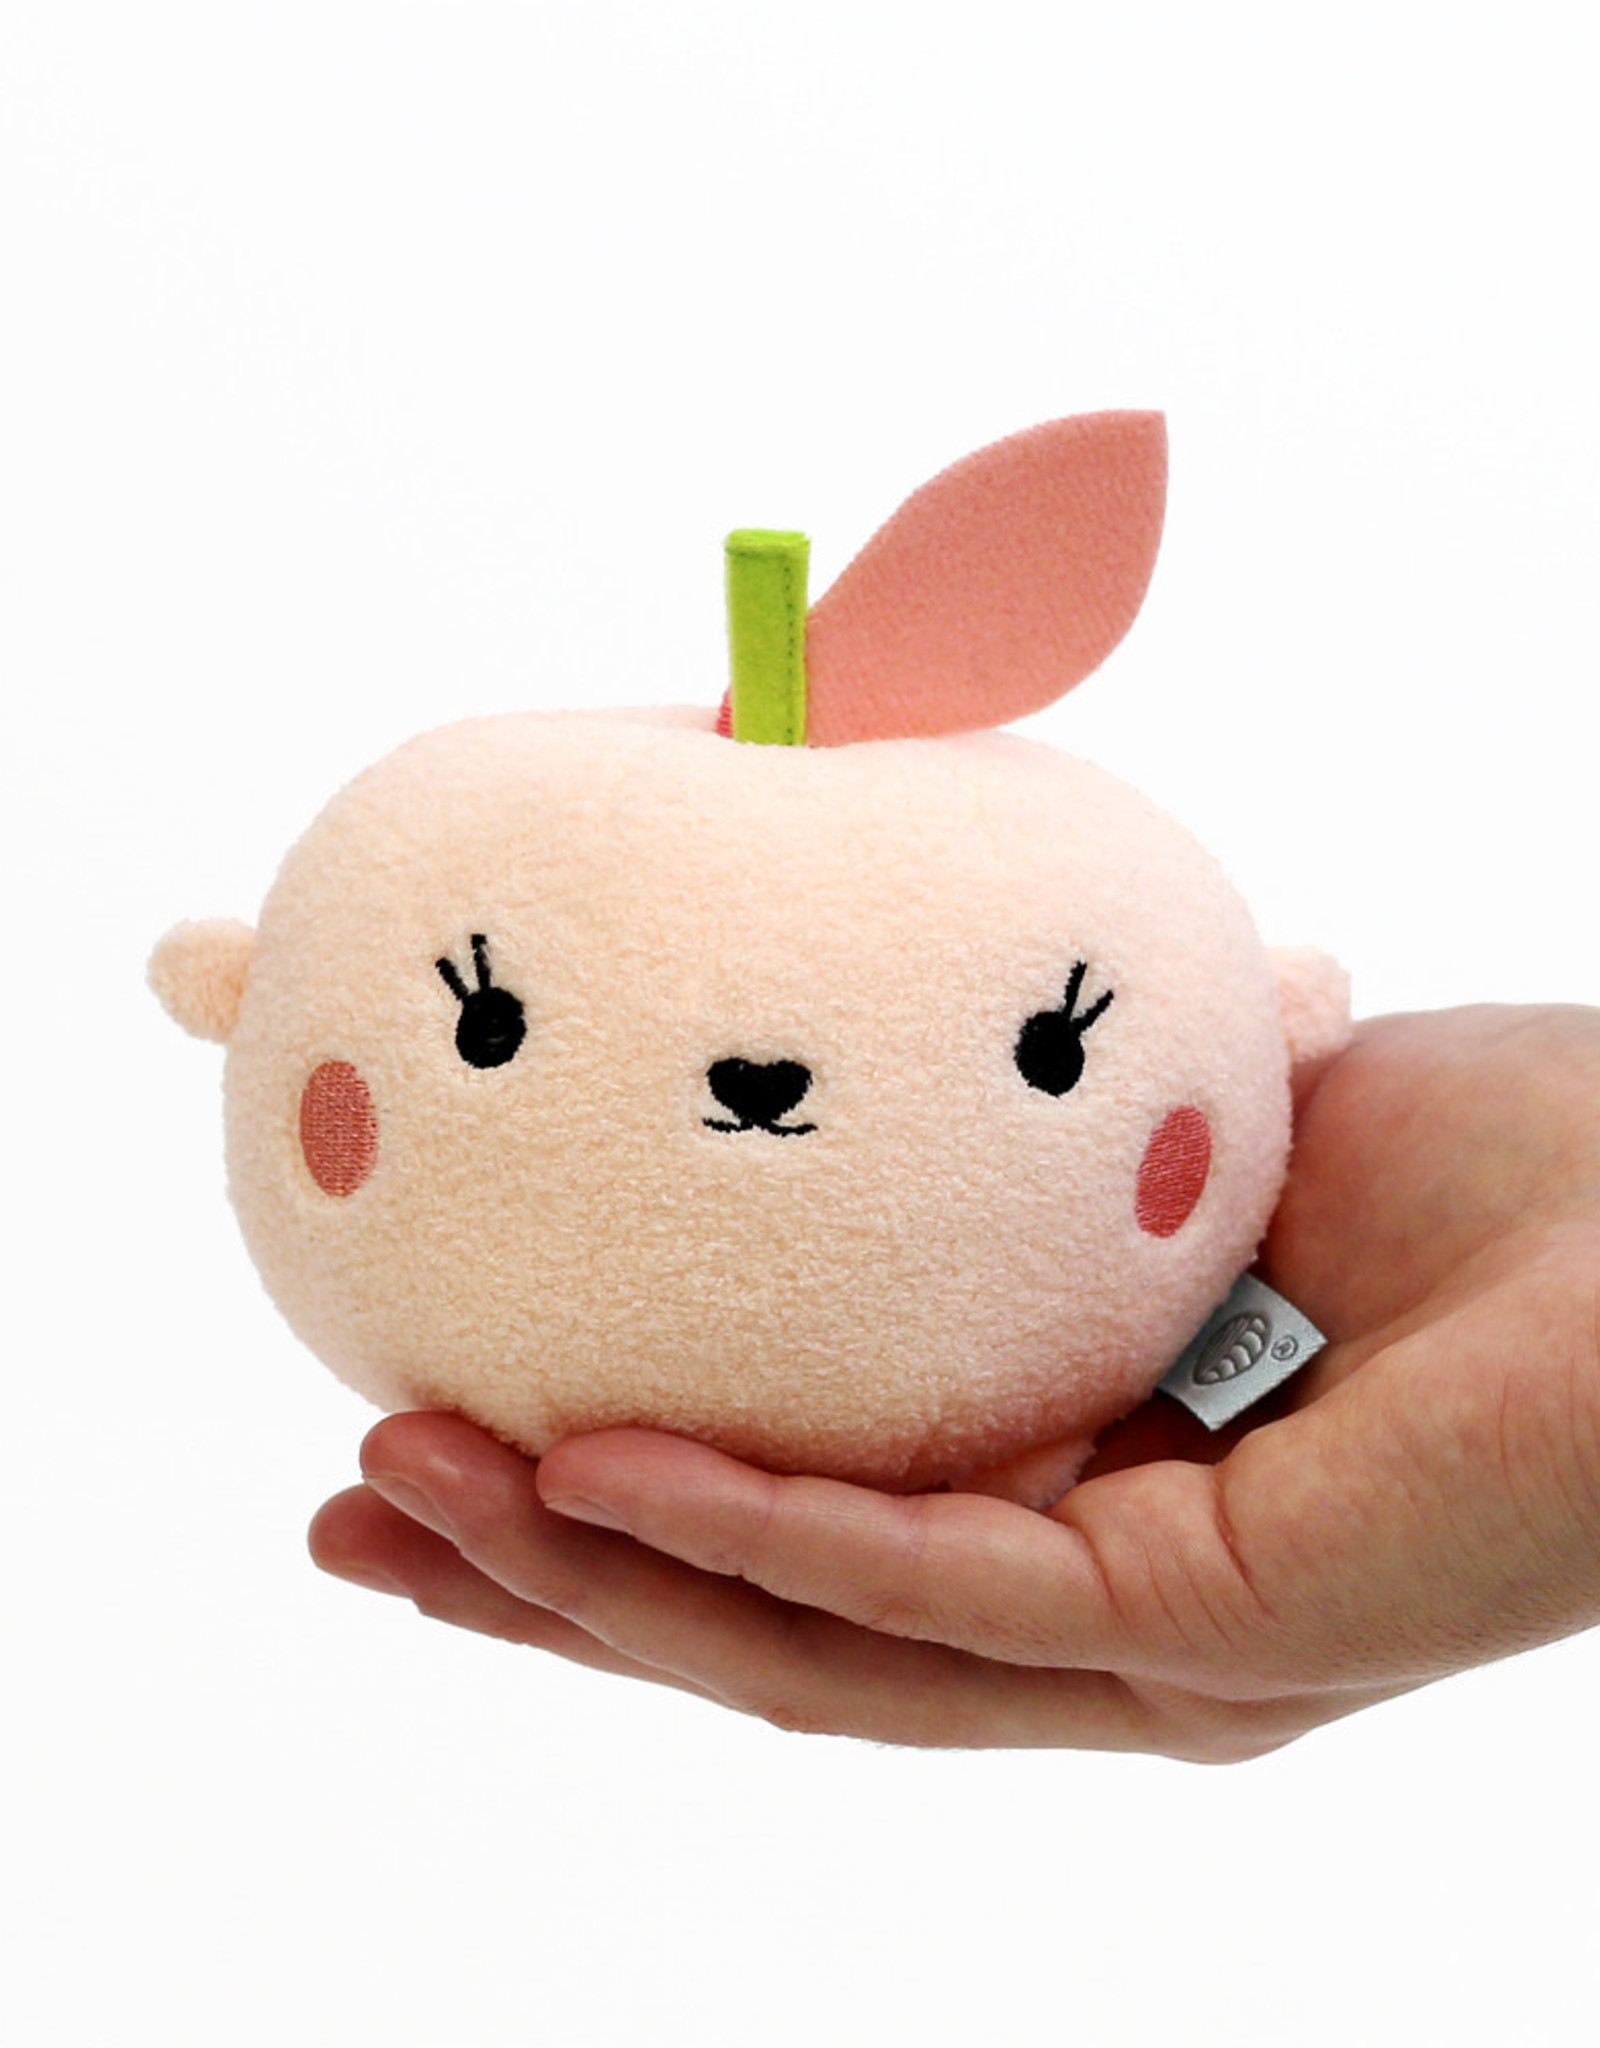 Noodoll Mini Plush - Ricepeach